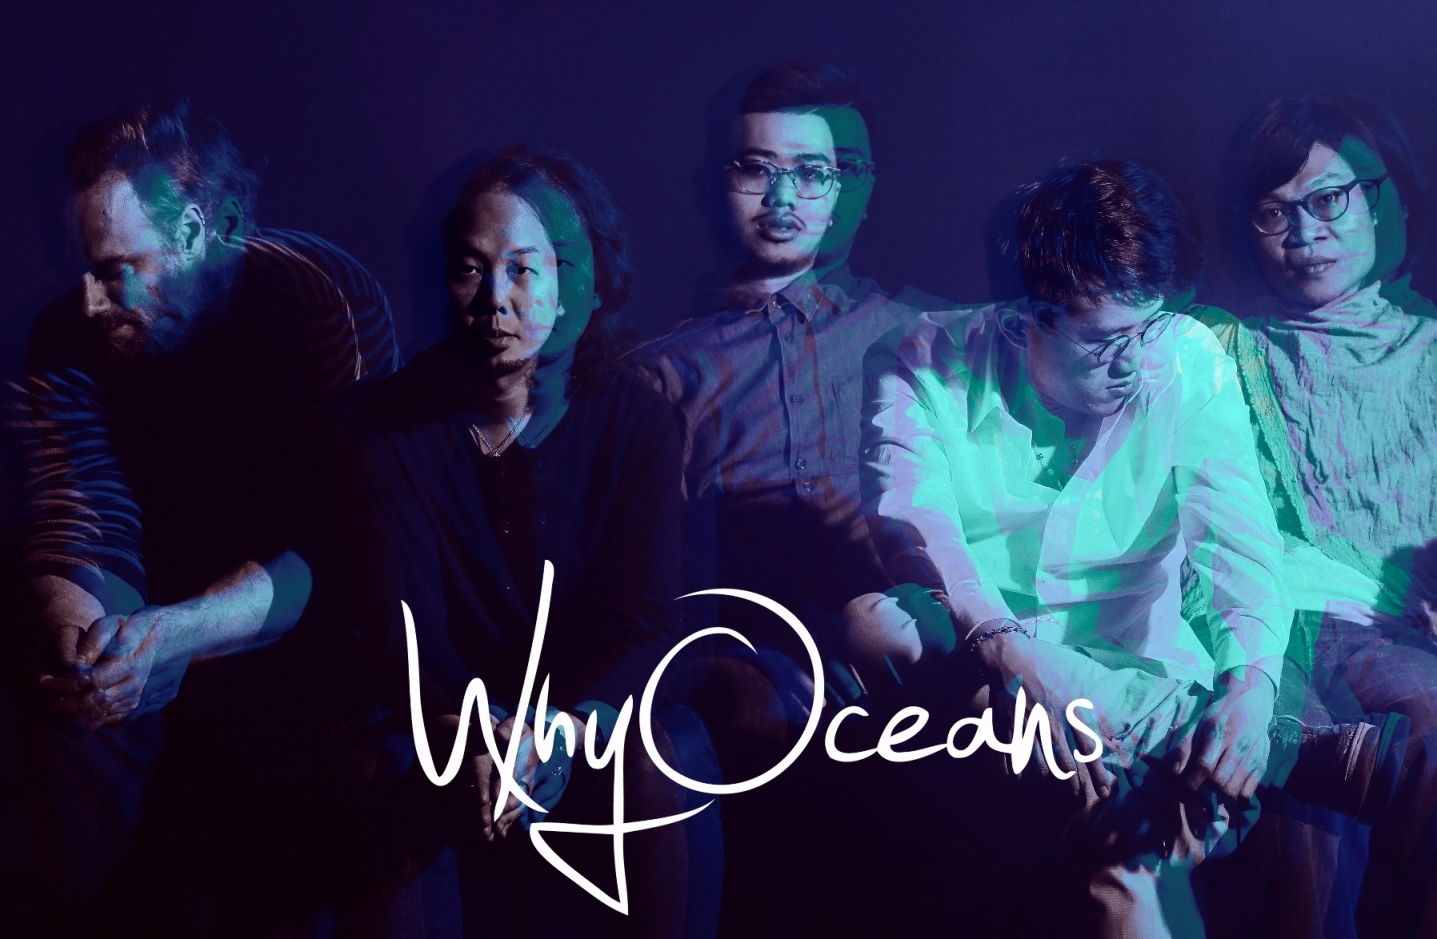 WhyOceans picture